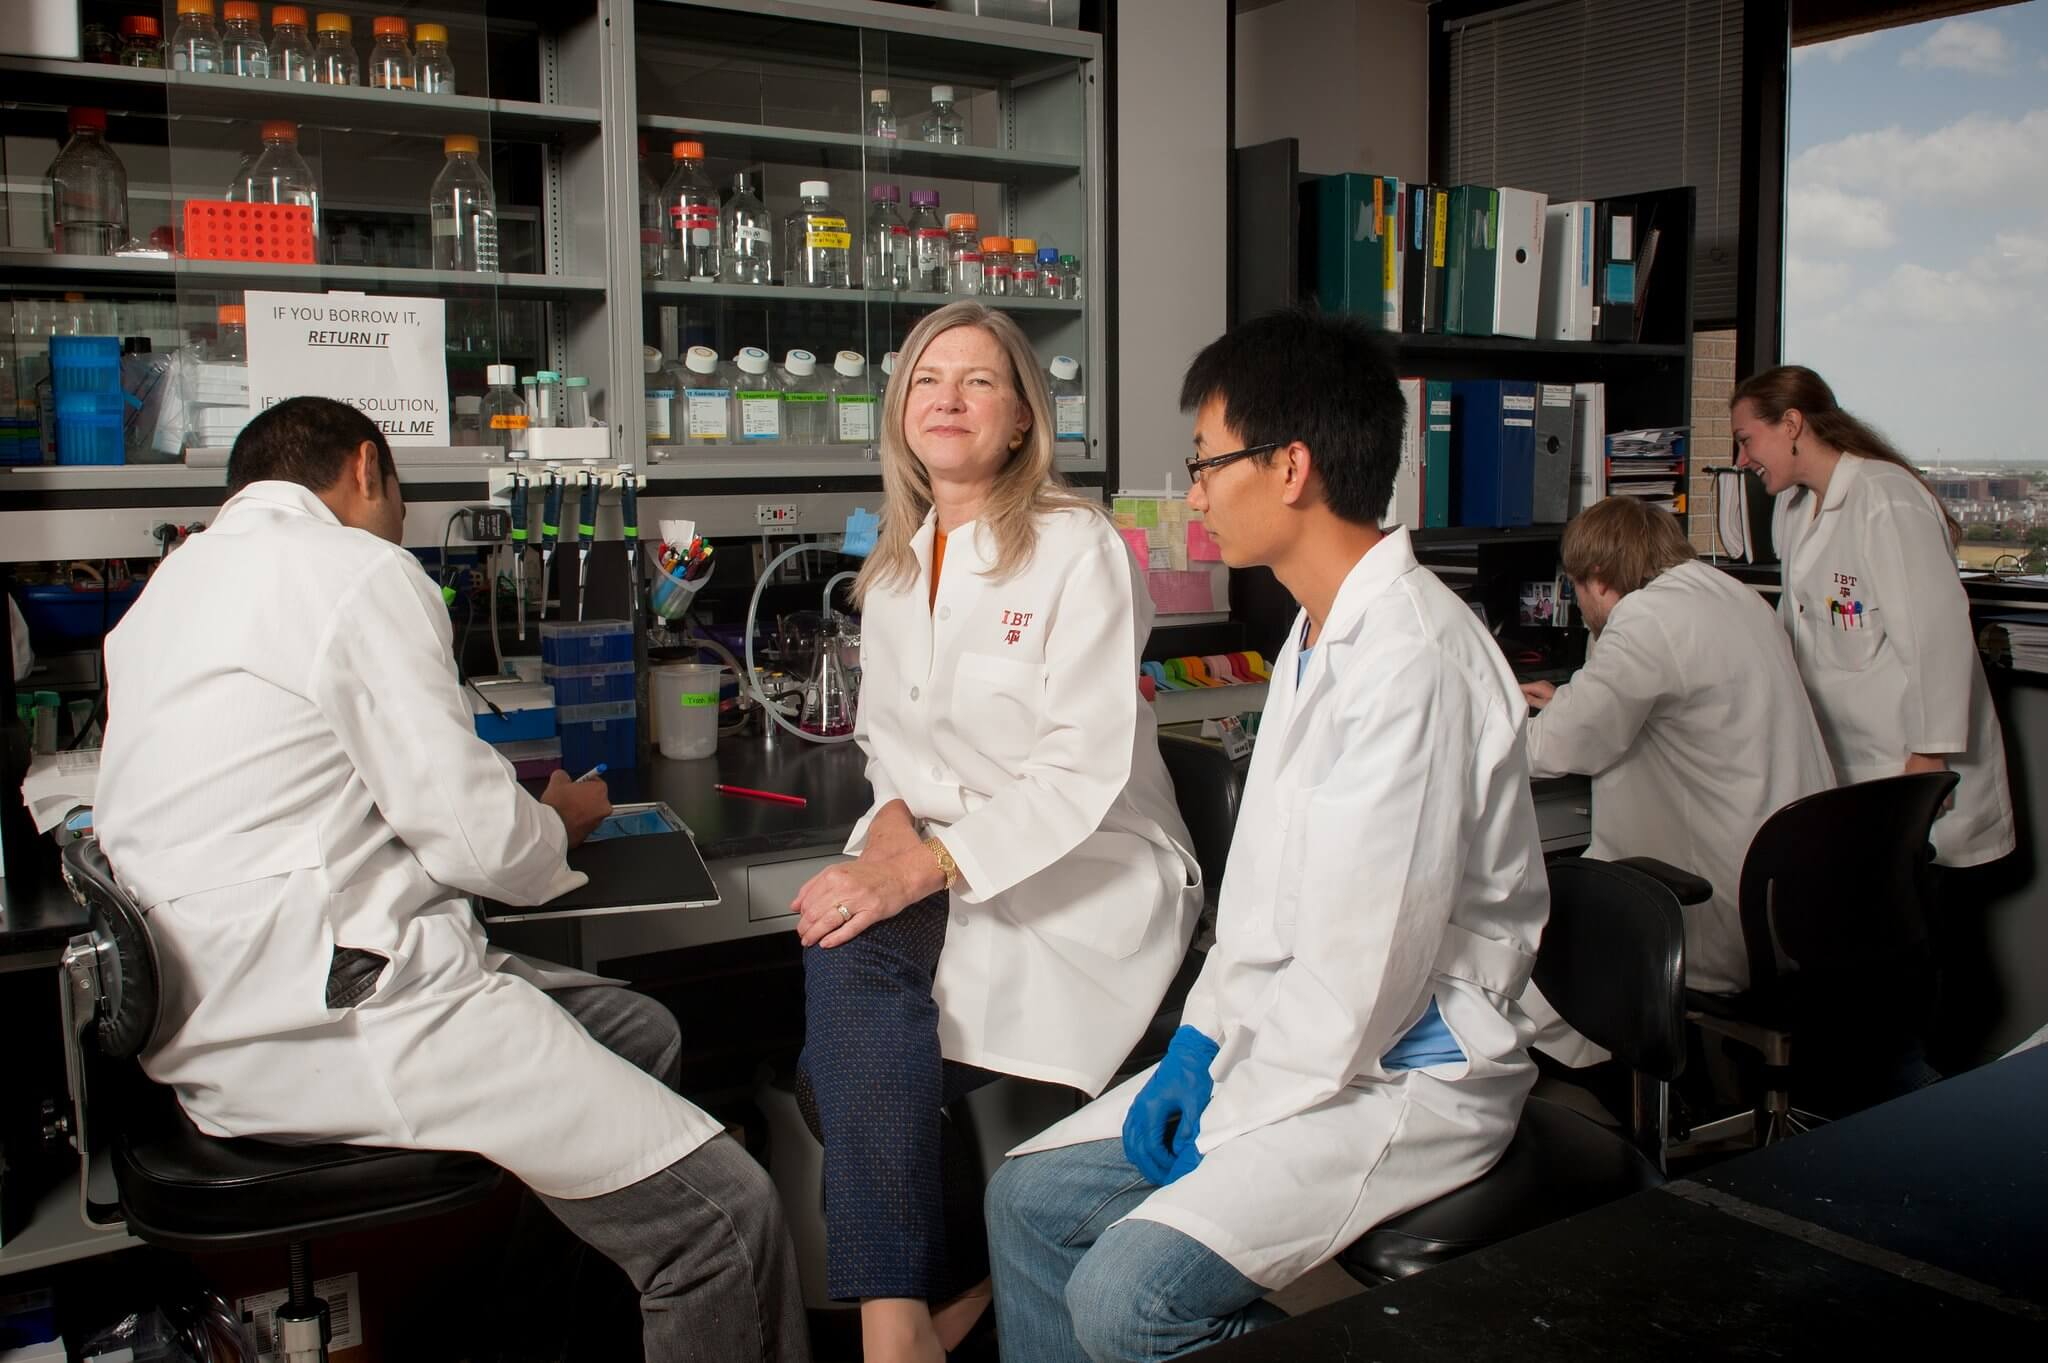 Cheryl Lyn Walker, Ph.D., and her team of researchers from Texas A&M IBT, University of Texas MD Anderson Cancer Center and the University of Houston